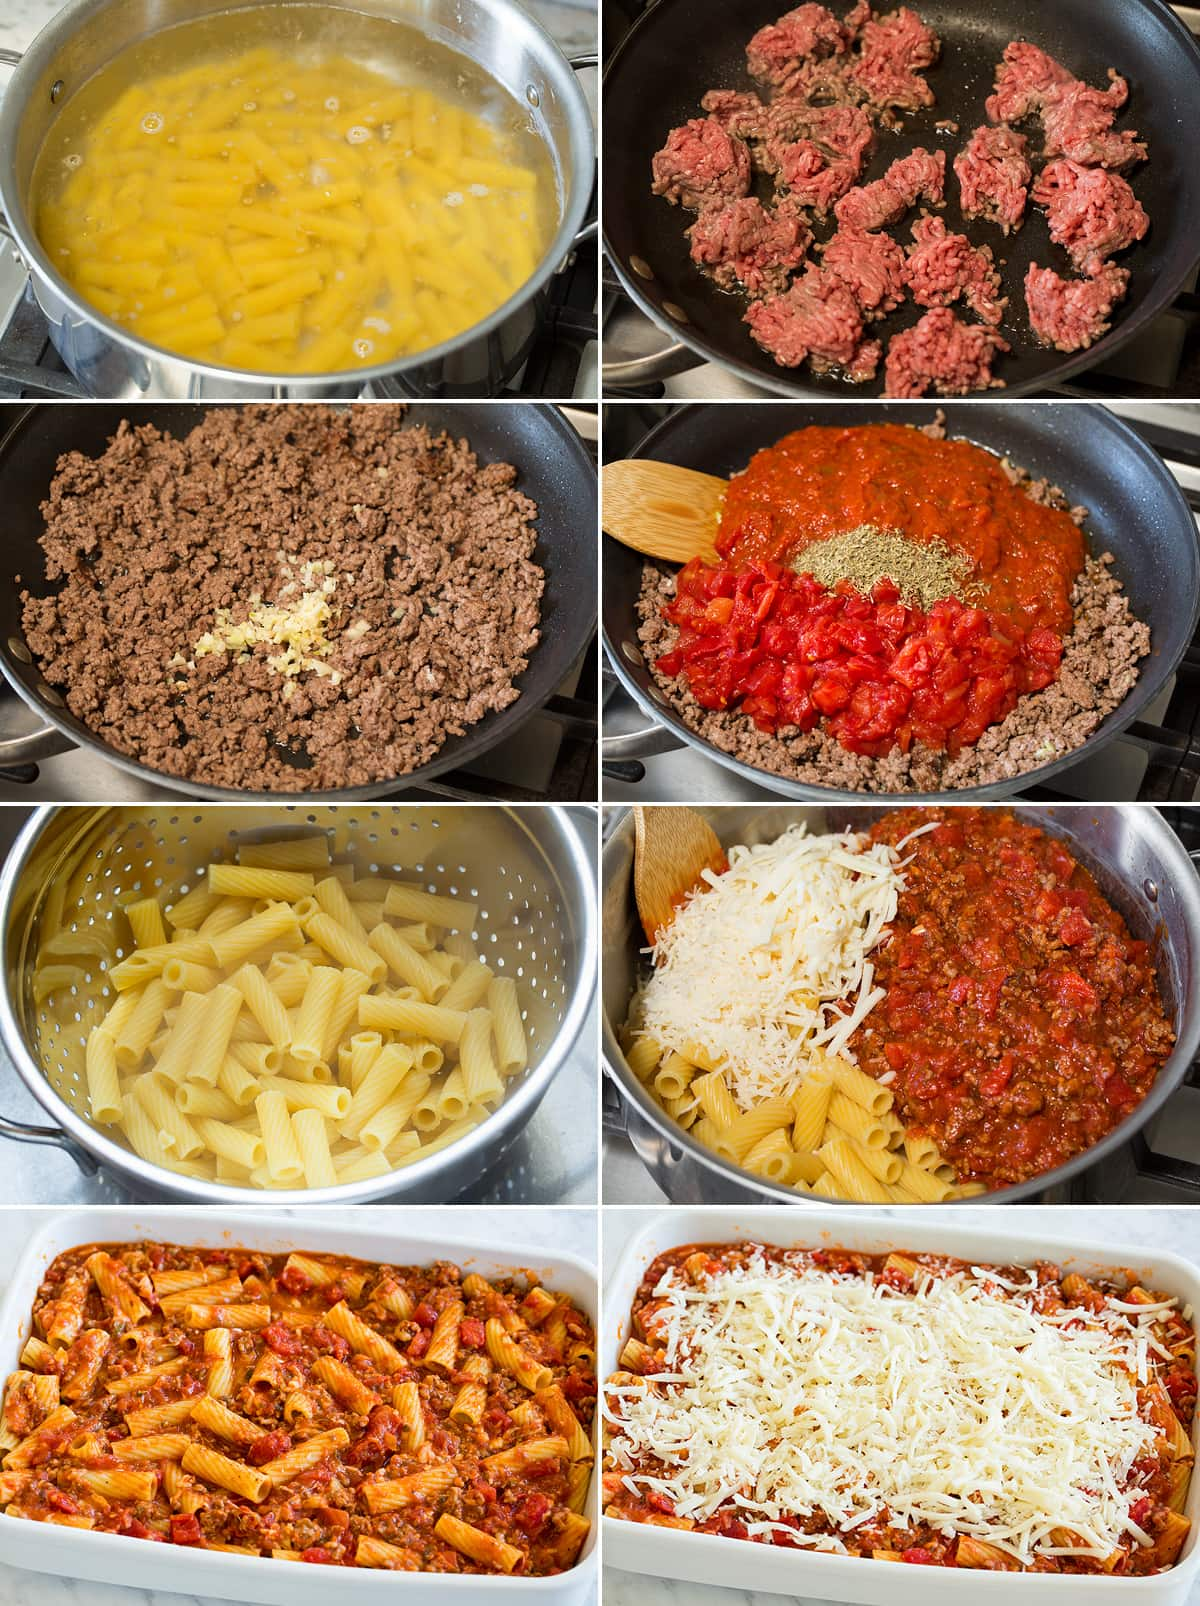 Collage of eight photos showing steps of making rigatoni. Includes boiling pasta, cooking beef, mixing pasta cheese and sauce, spreading into a baking dish and baking.